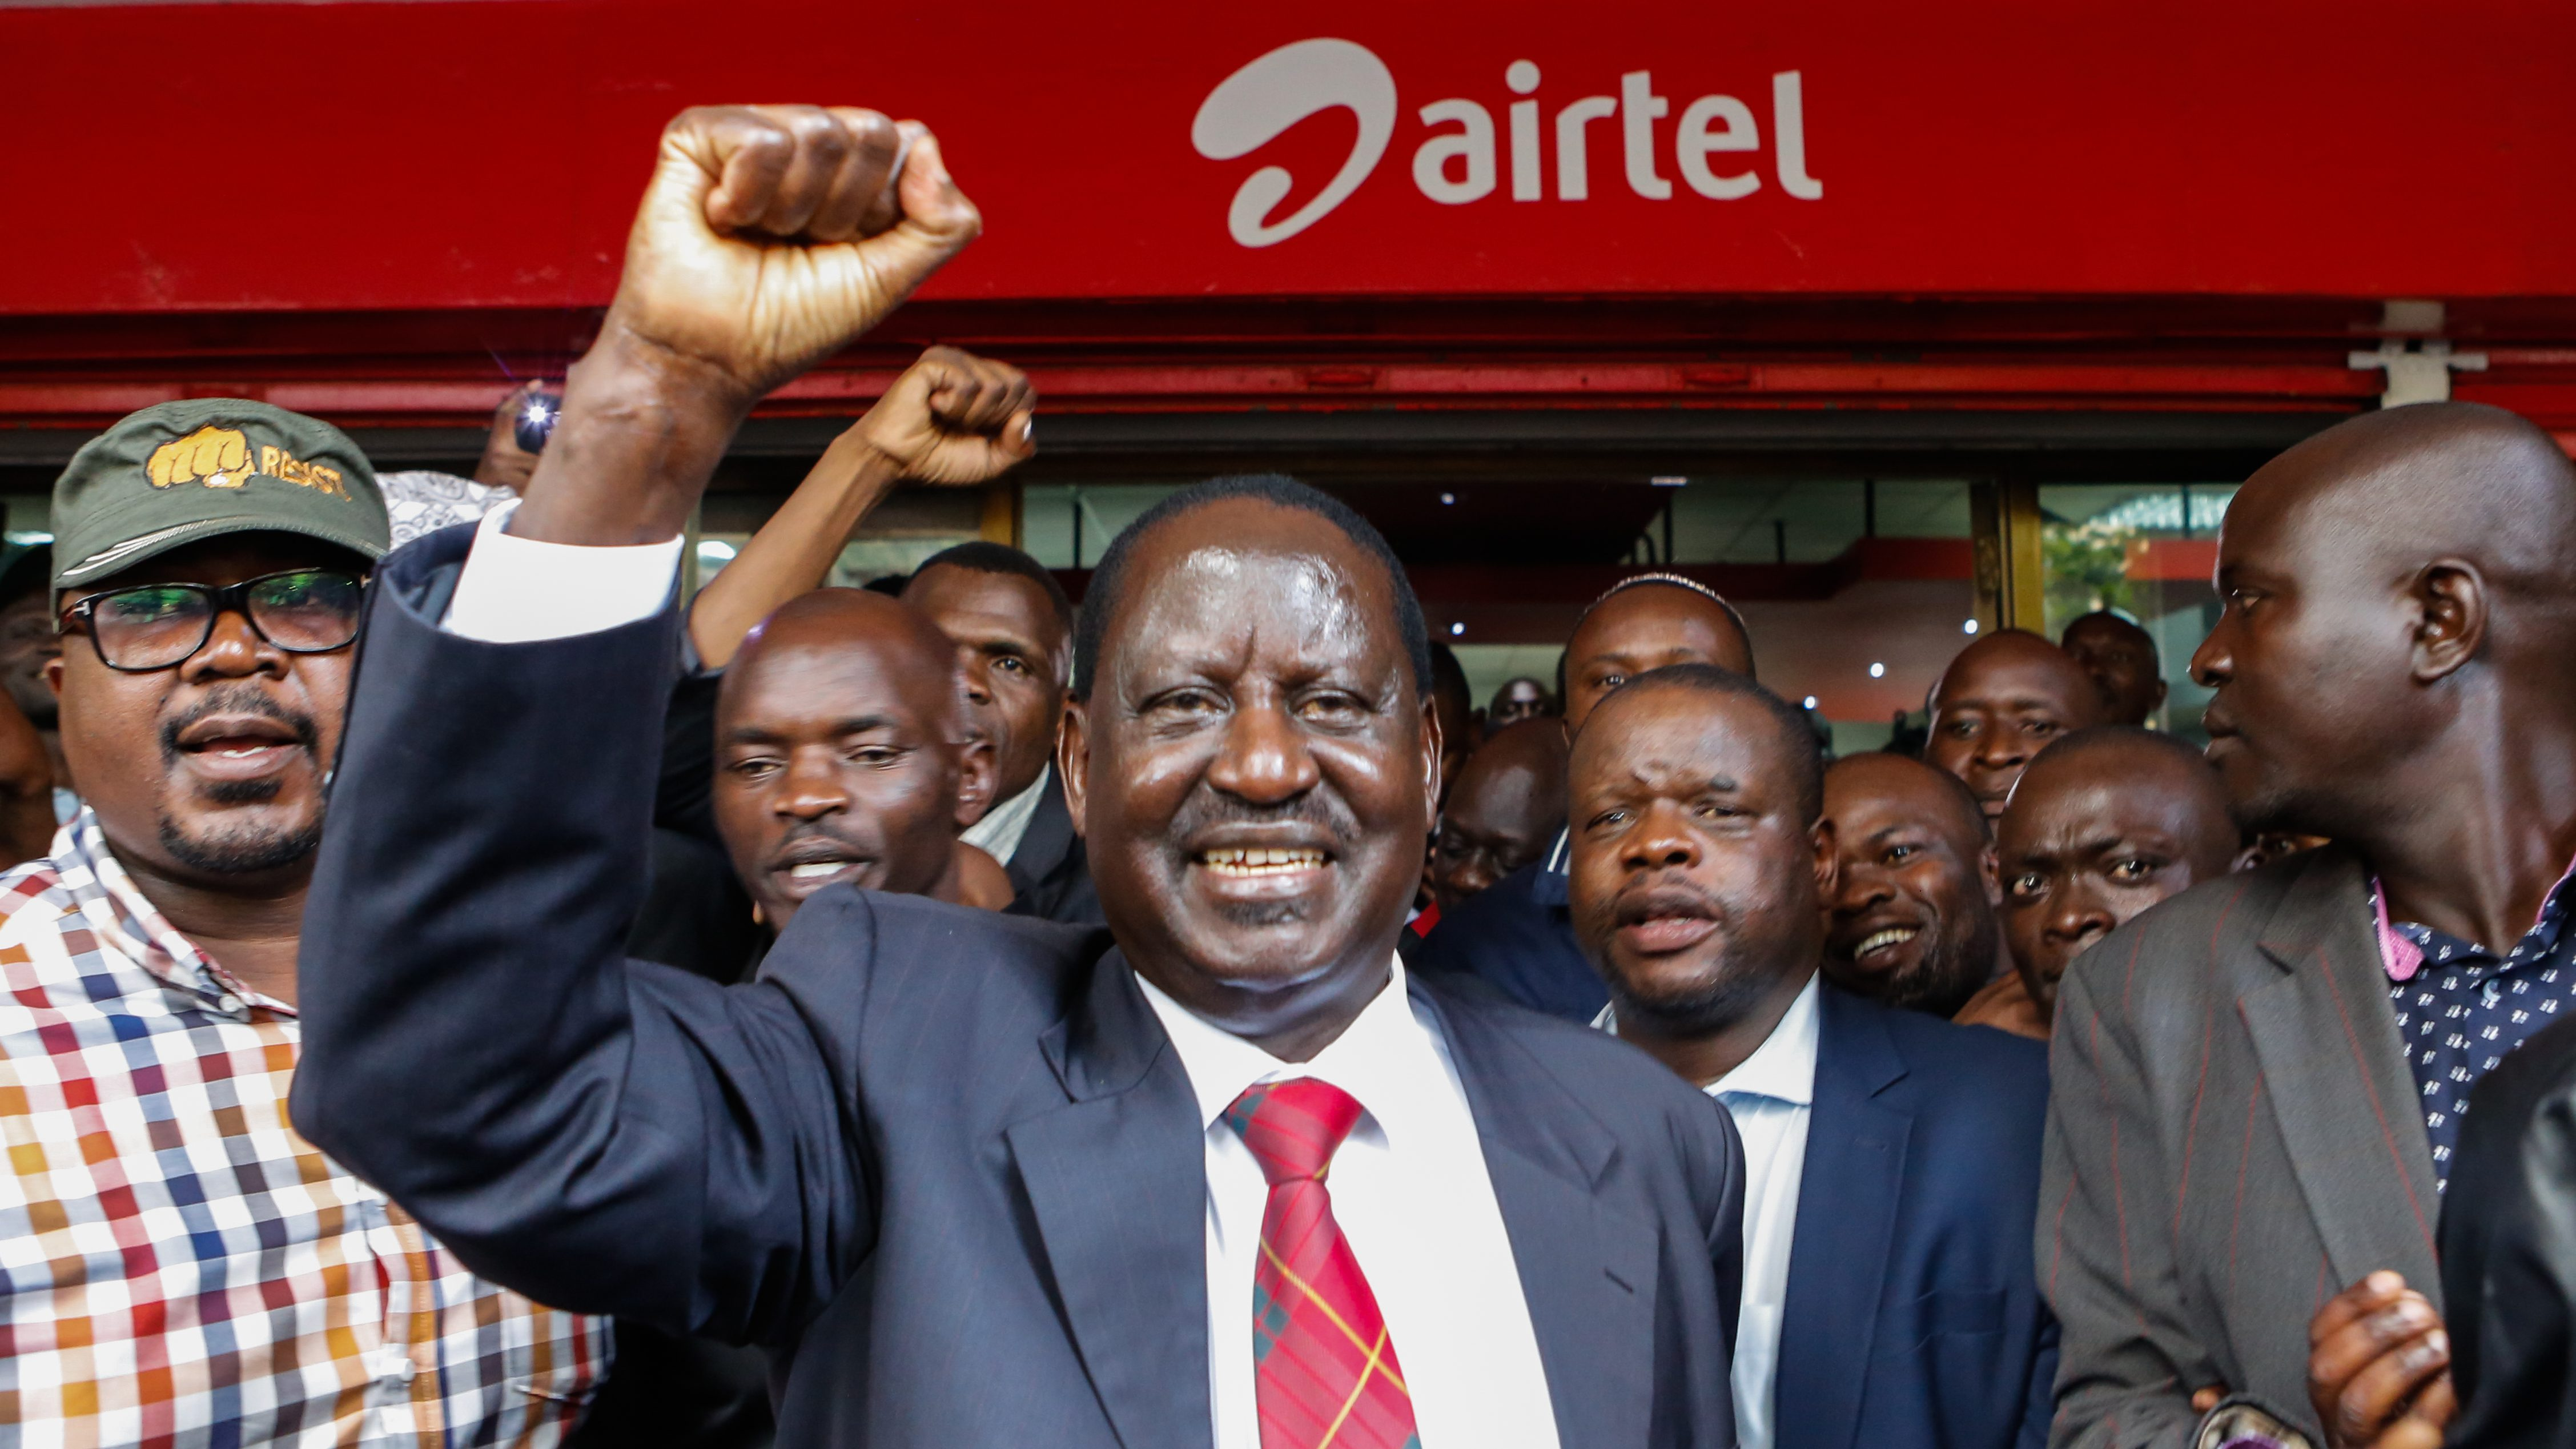 The leader of the opposition coalition the National Super Alliance (NASA) and its presidential candidate Raila Odinga (C) cheers to his supporters after getting his new Airtel sim card at an Airtel shop in Nairobi, Kenya, 06 November 2017. Odinga and other coalition leaders on 06 November switched his mobile phone service provider to Airtel from Safaricom, one of the companies he accuses of being pro-government. NASA has called its supporters to boycott products by companies it accuses of supporting the government after the coalition boycotted the presidential election held on 26 October 2017 in which the President Uhuru Kenyatta was declared the president-elect.